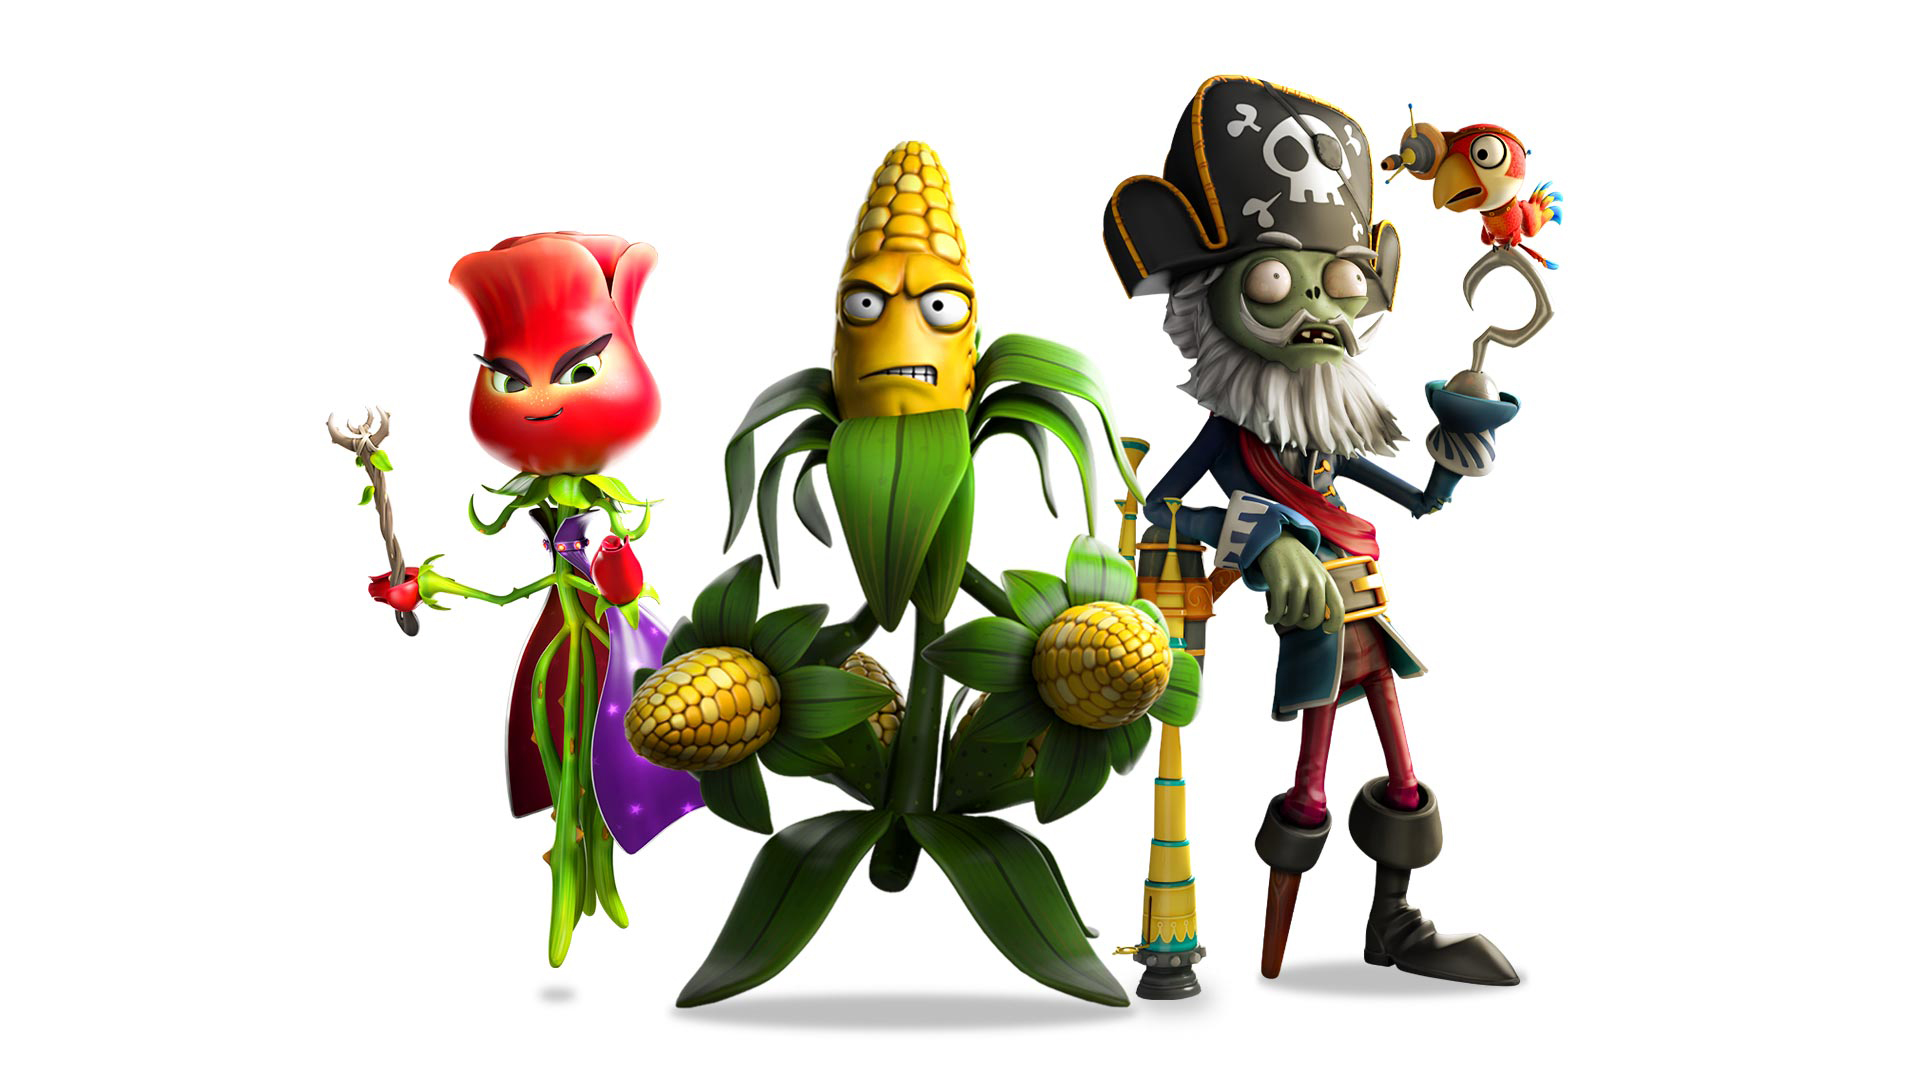 Plants vs zombies garden warfare 2 ea access and origin Plants vs zombies garden warfare 2 event calendar